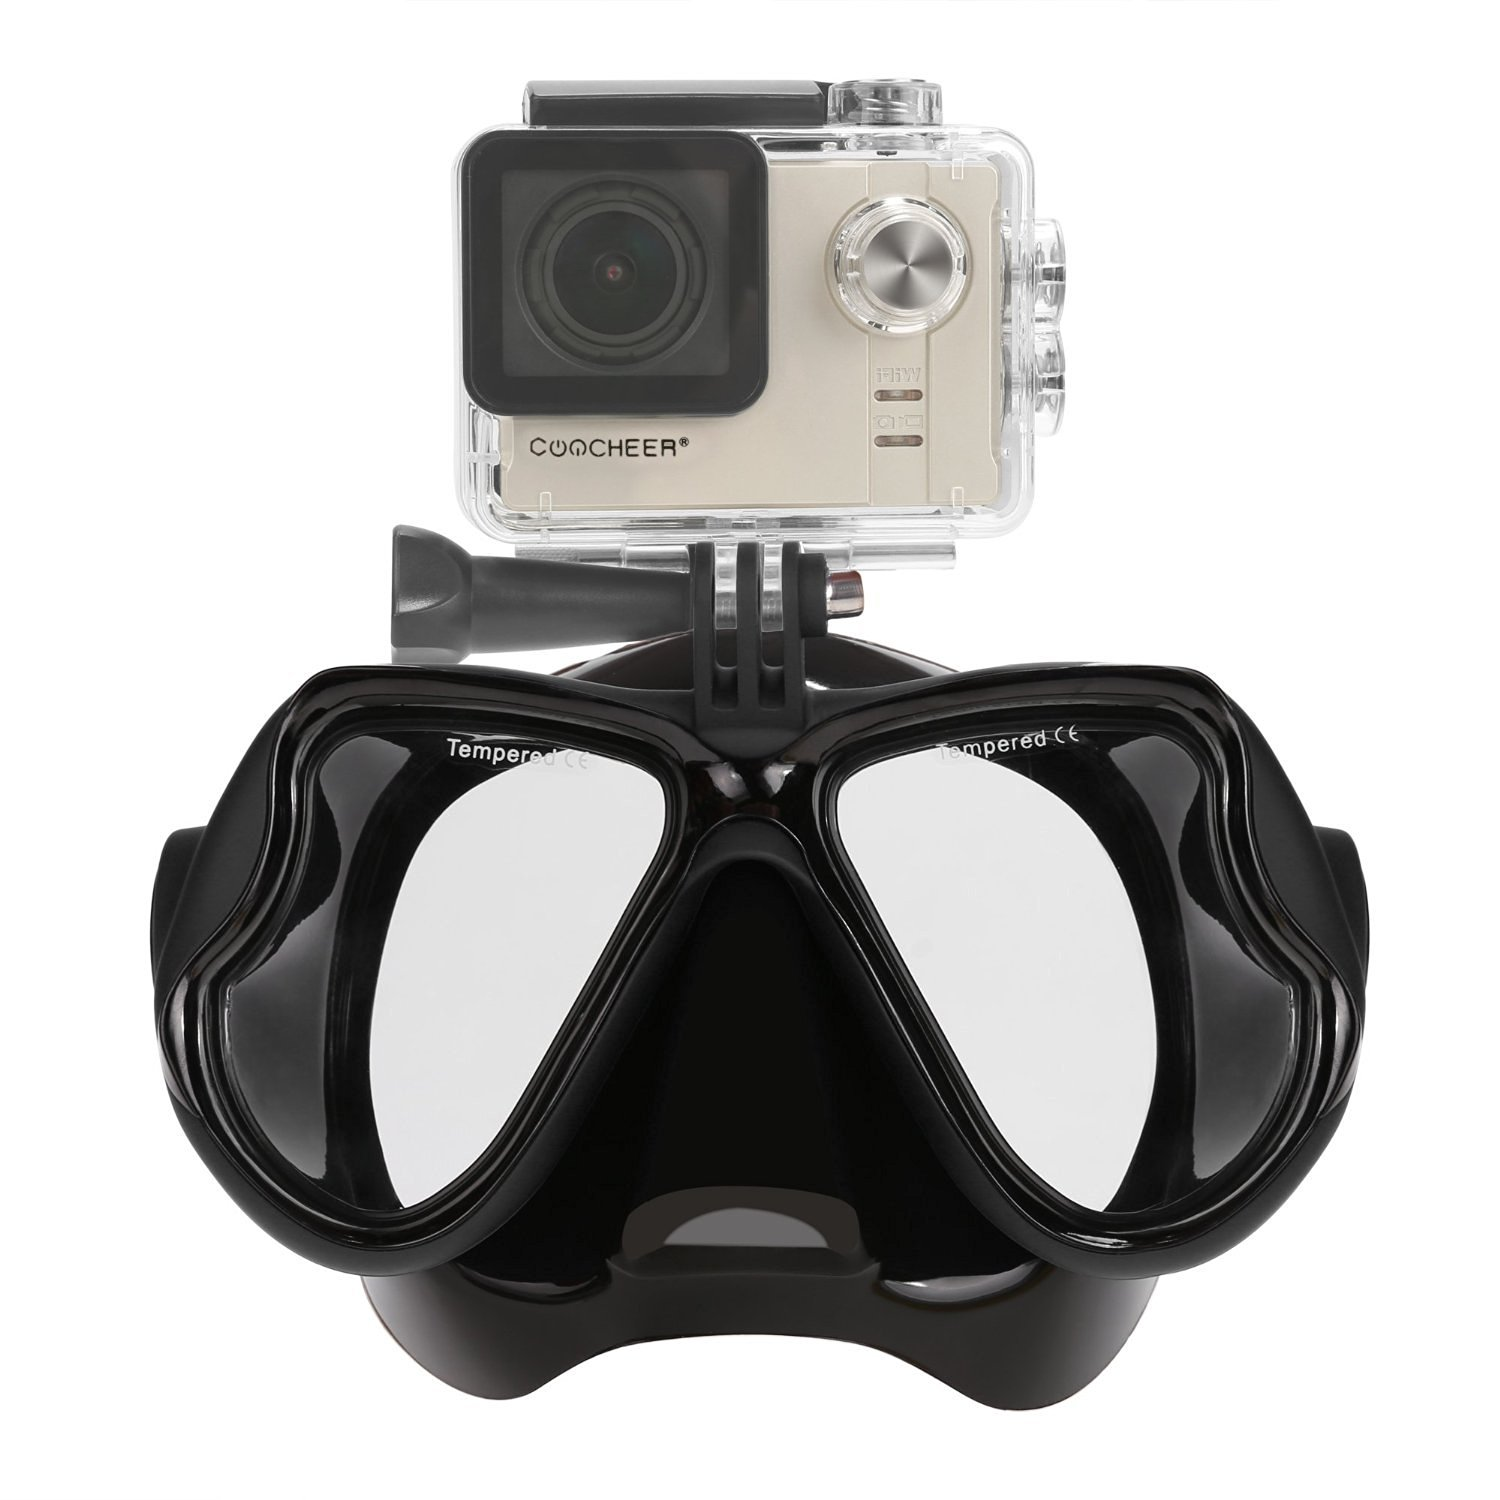 lanyi-scuba-head-mount-for-gopro-review